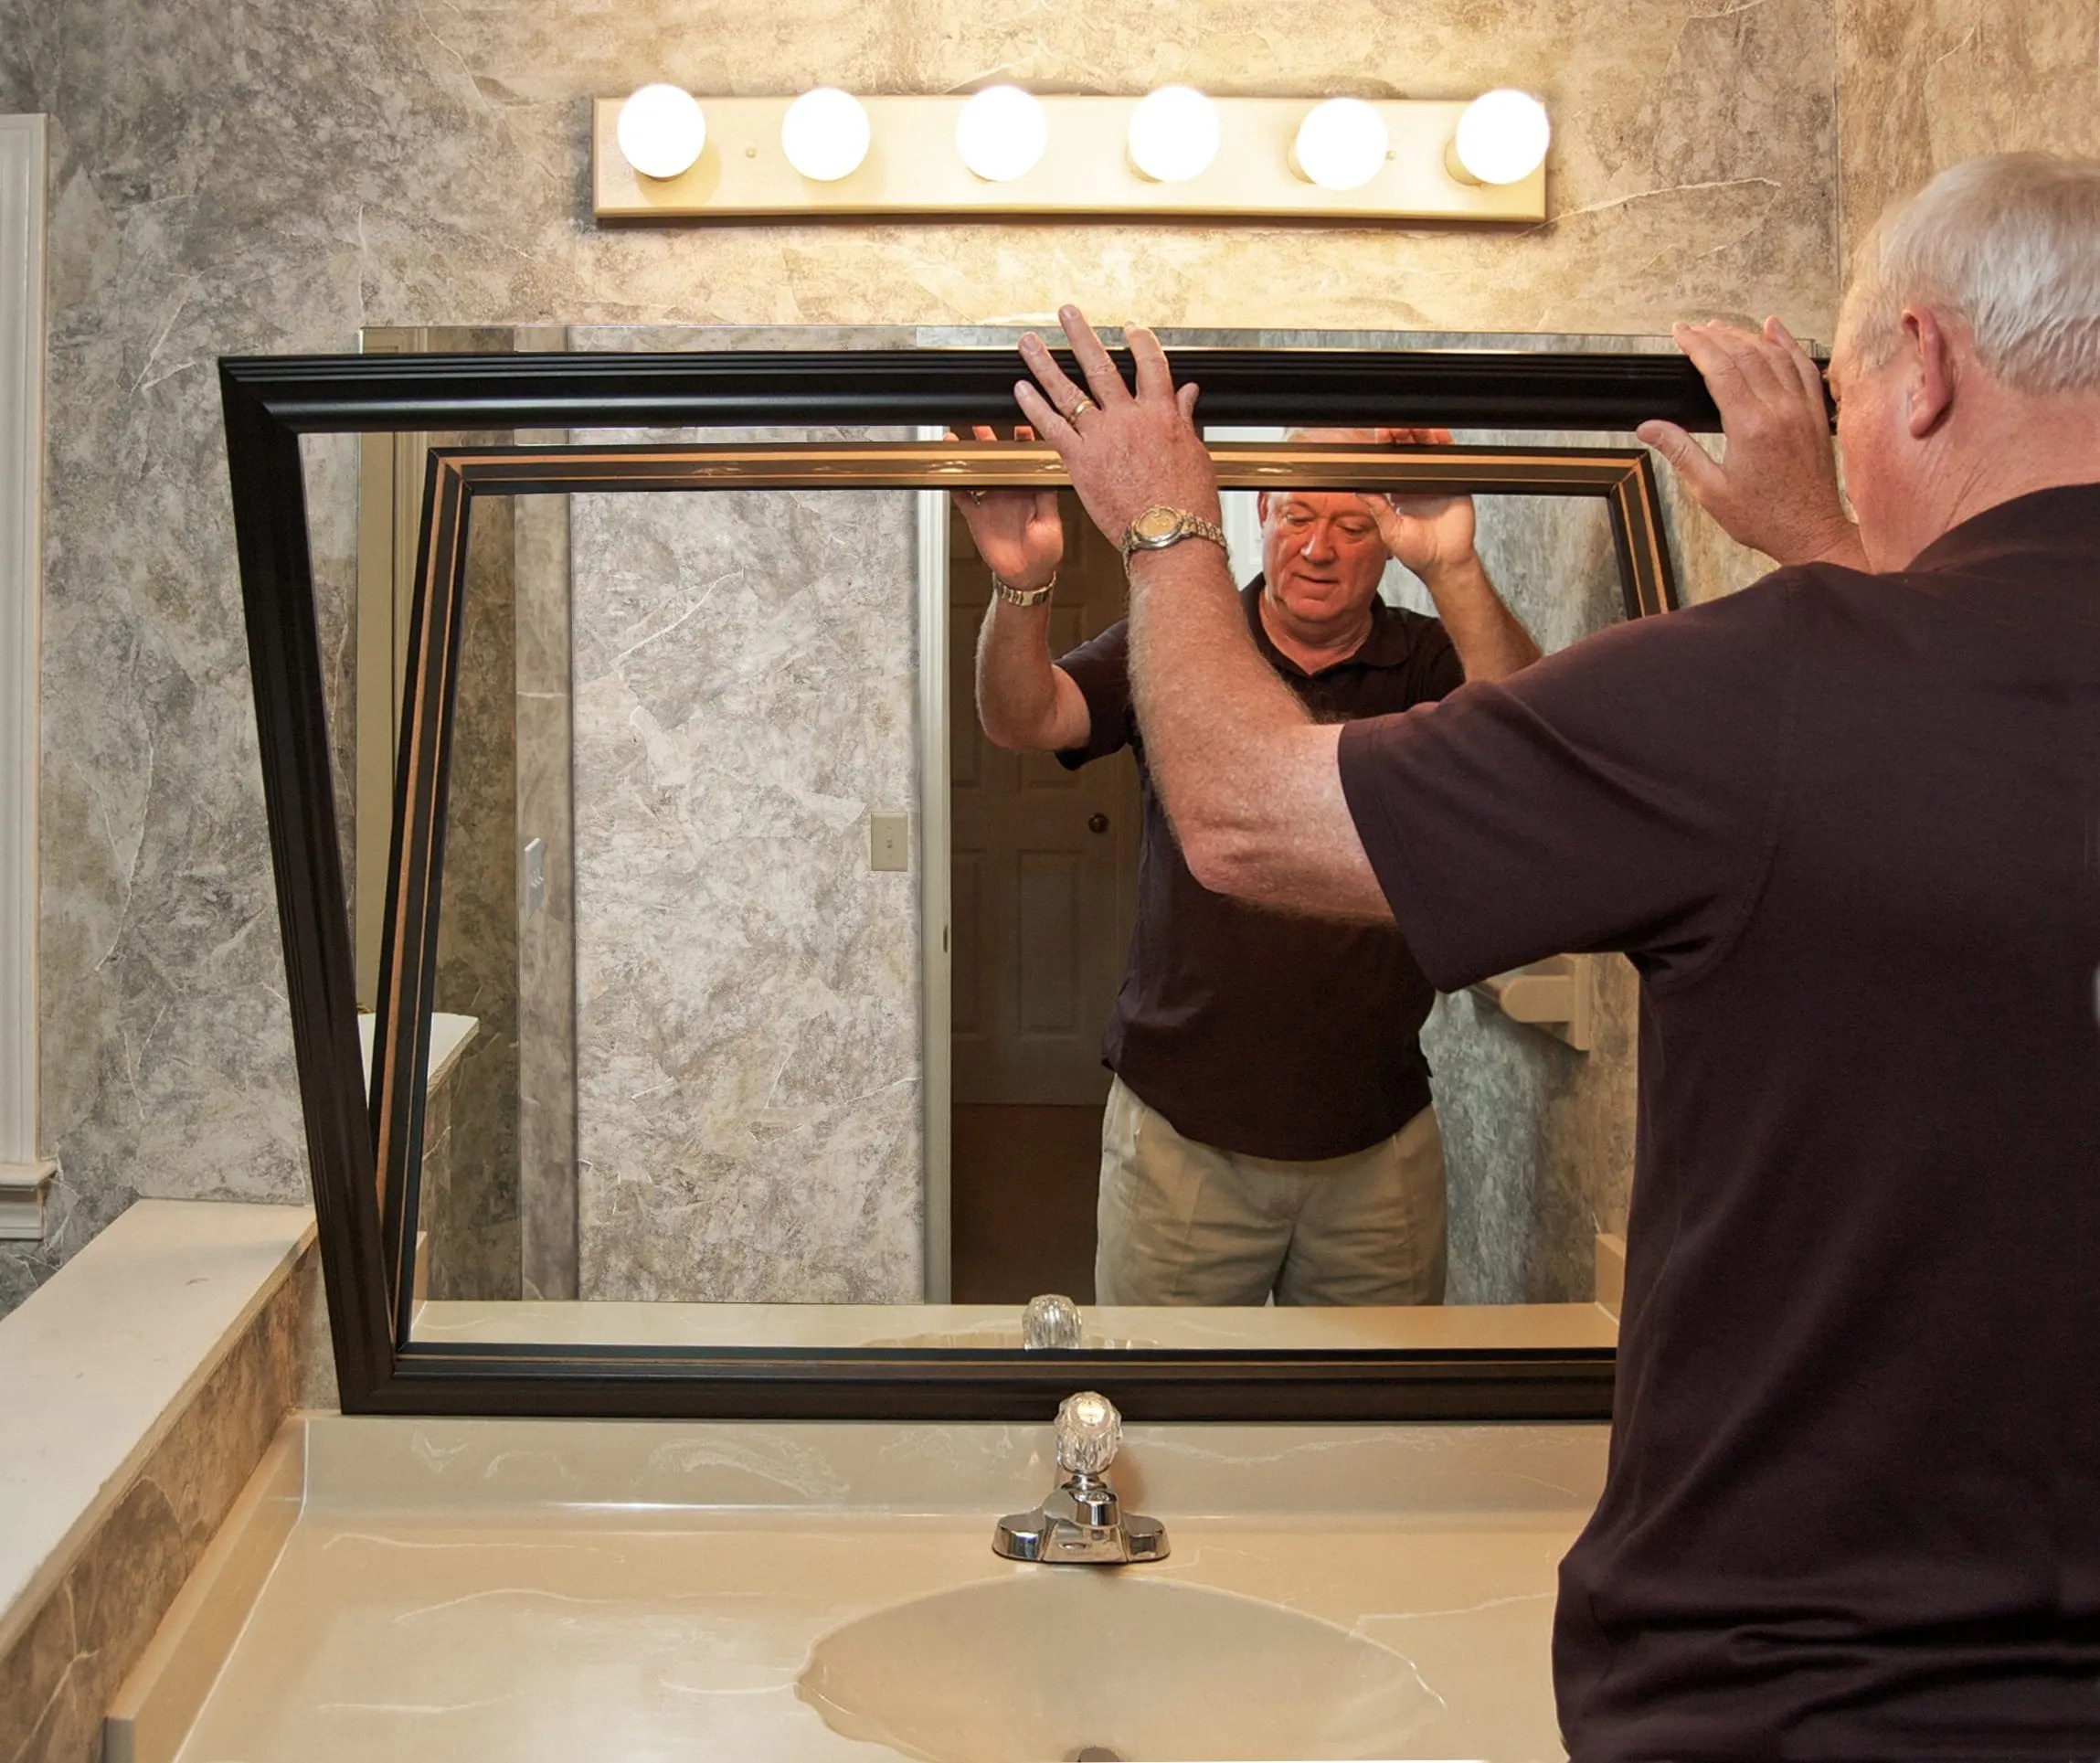 Black Edges on Mirrors Why It Happens and What To Do